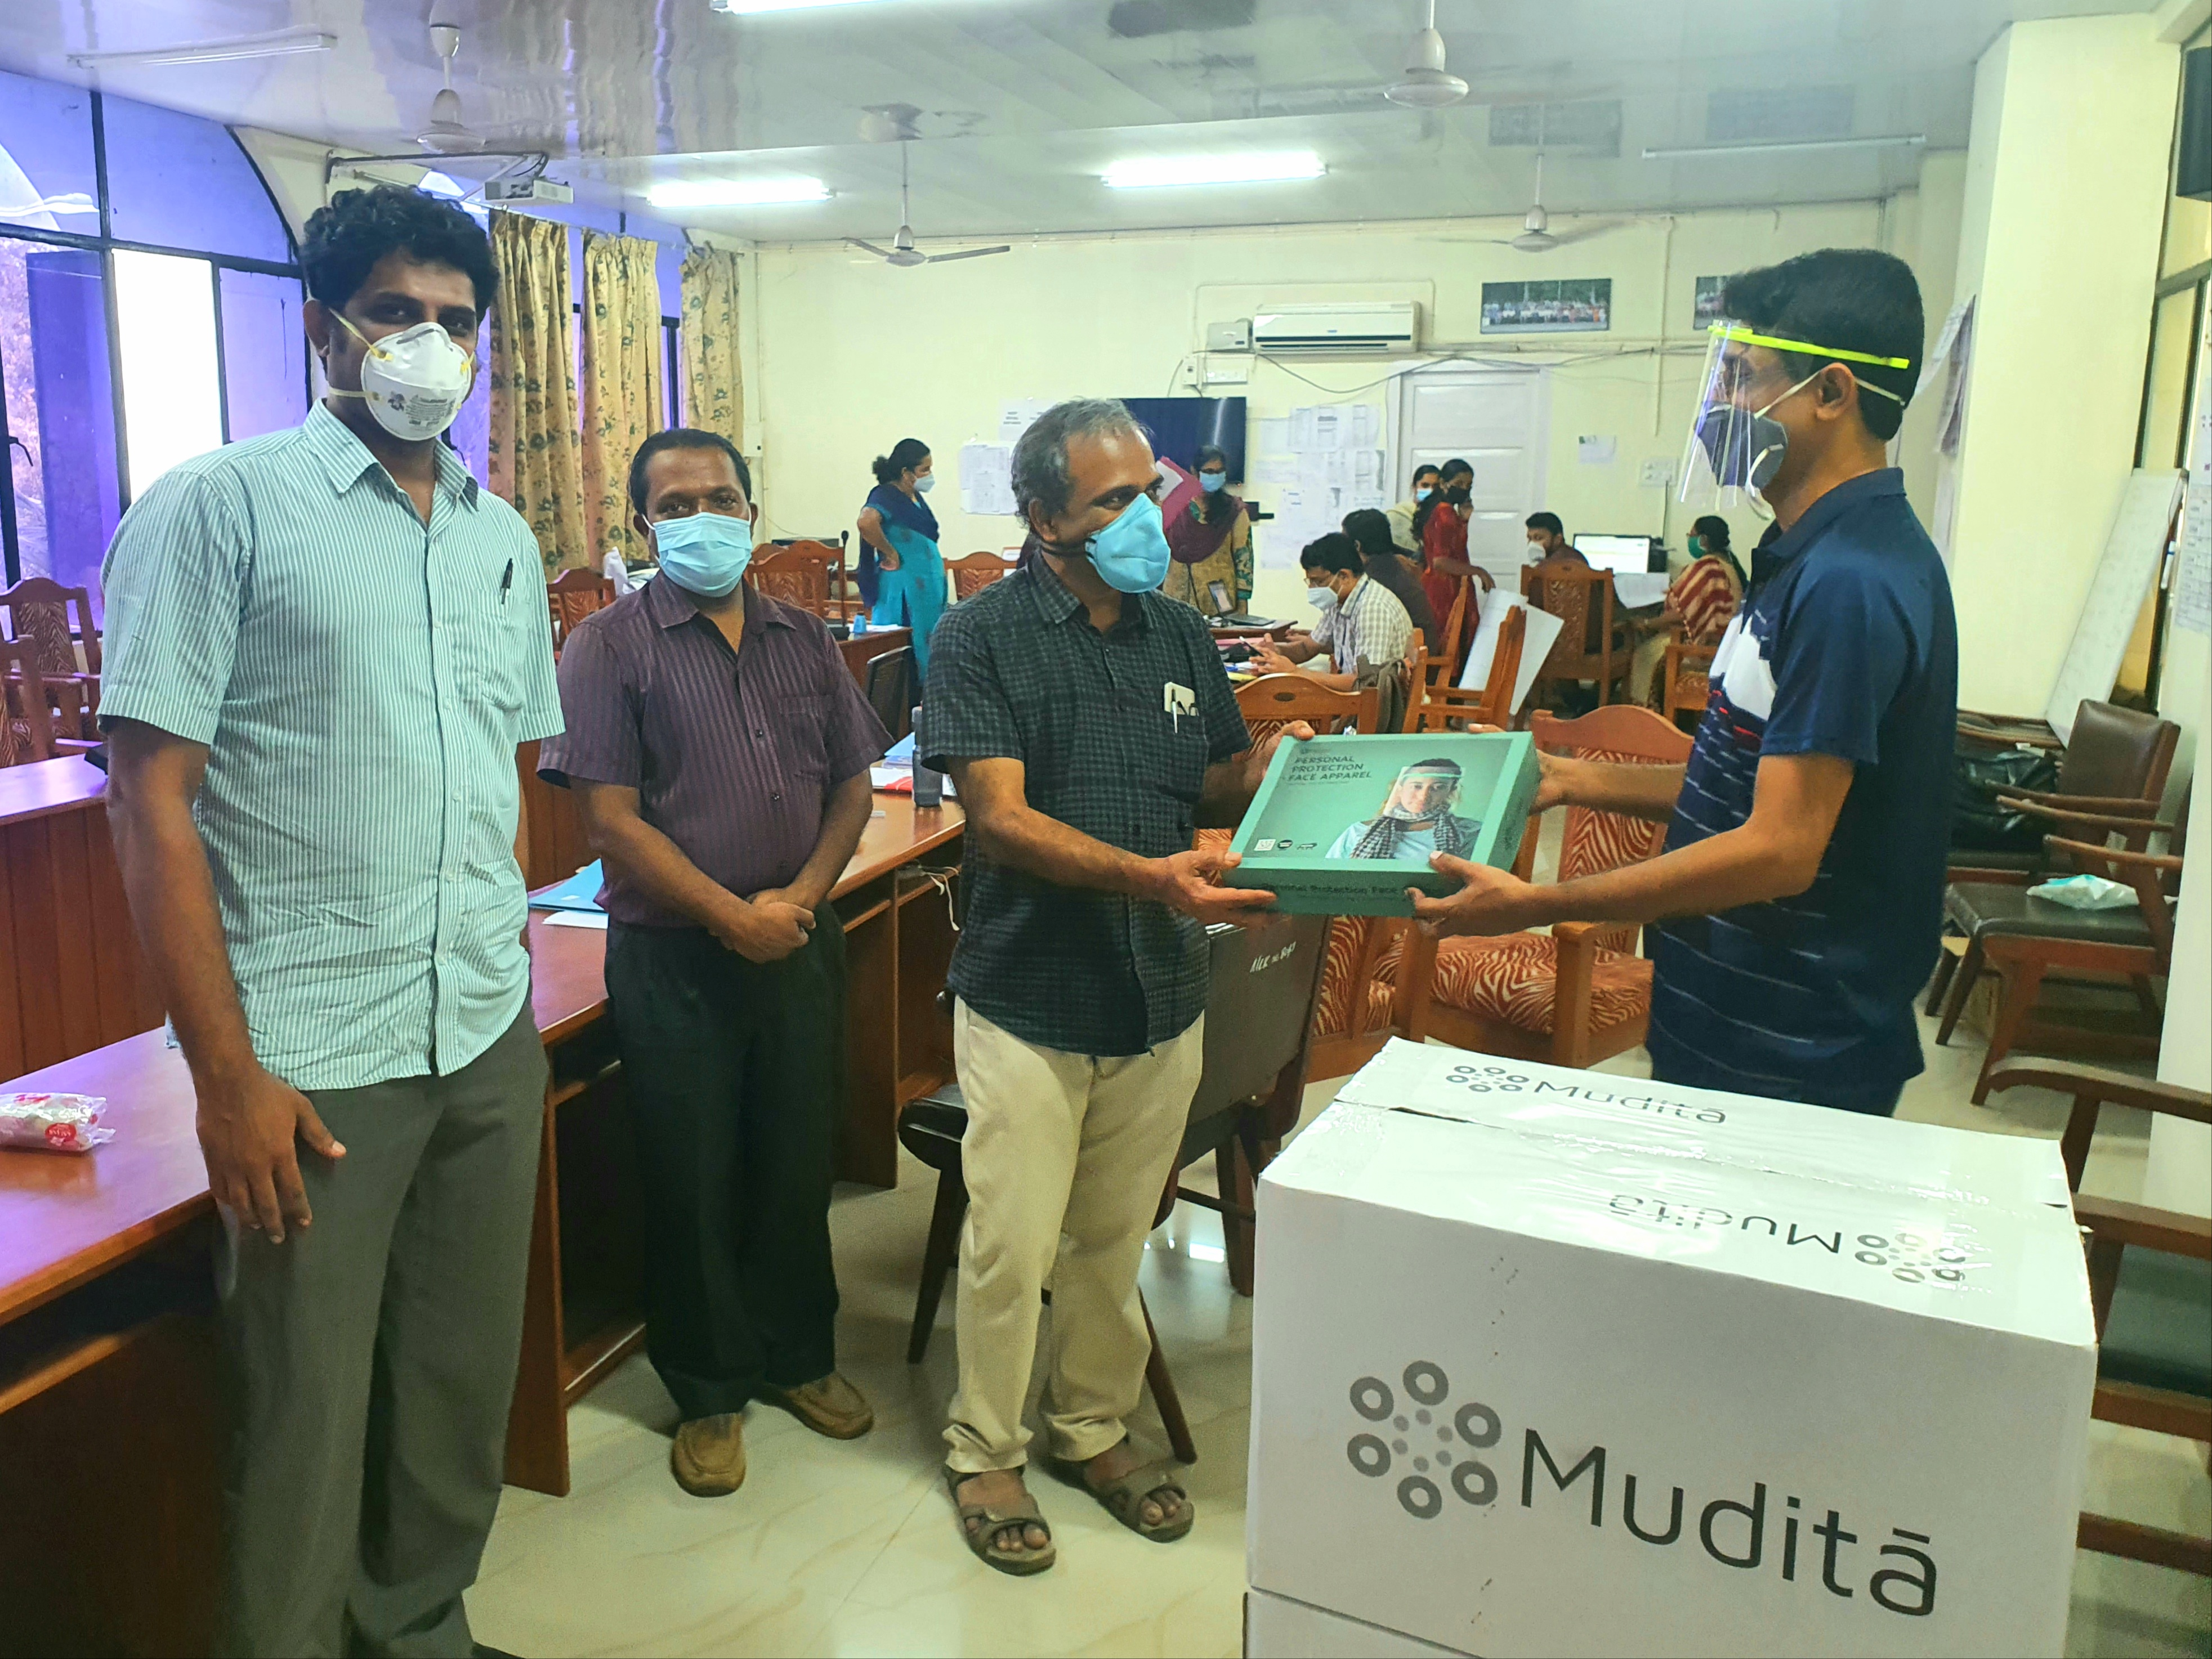 Handing over 1000 Mudita face apparels to Dr. Jayakumar, superintendent Govt Medical College, Kottayam. Sponsored by an well known industrialist from Kottayam.